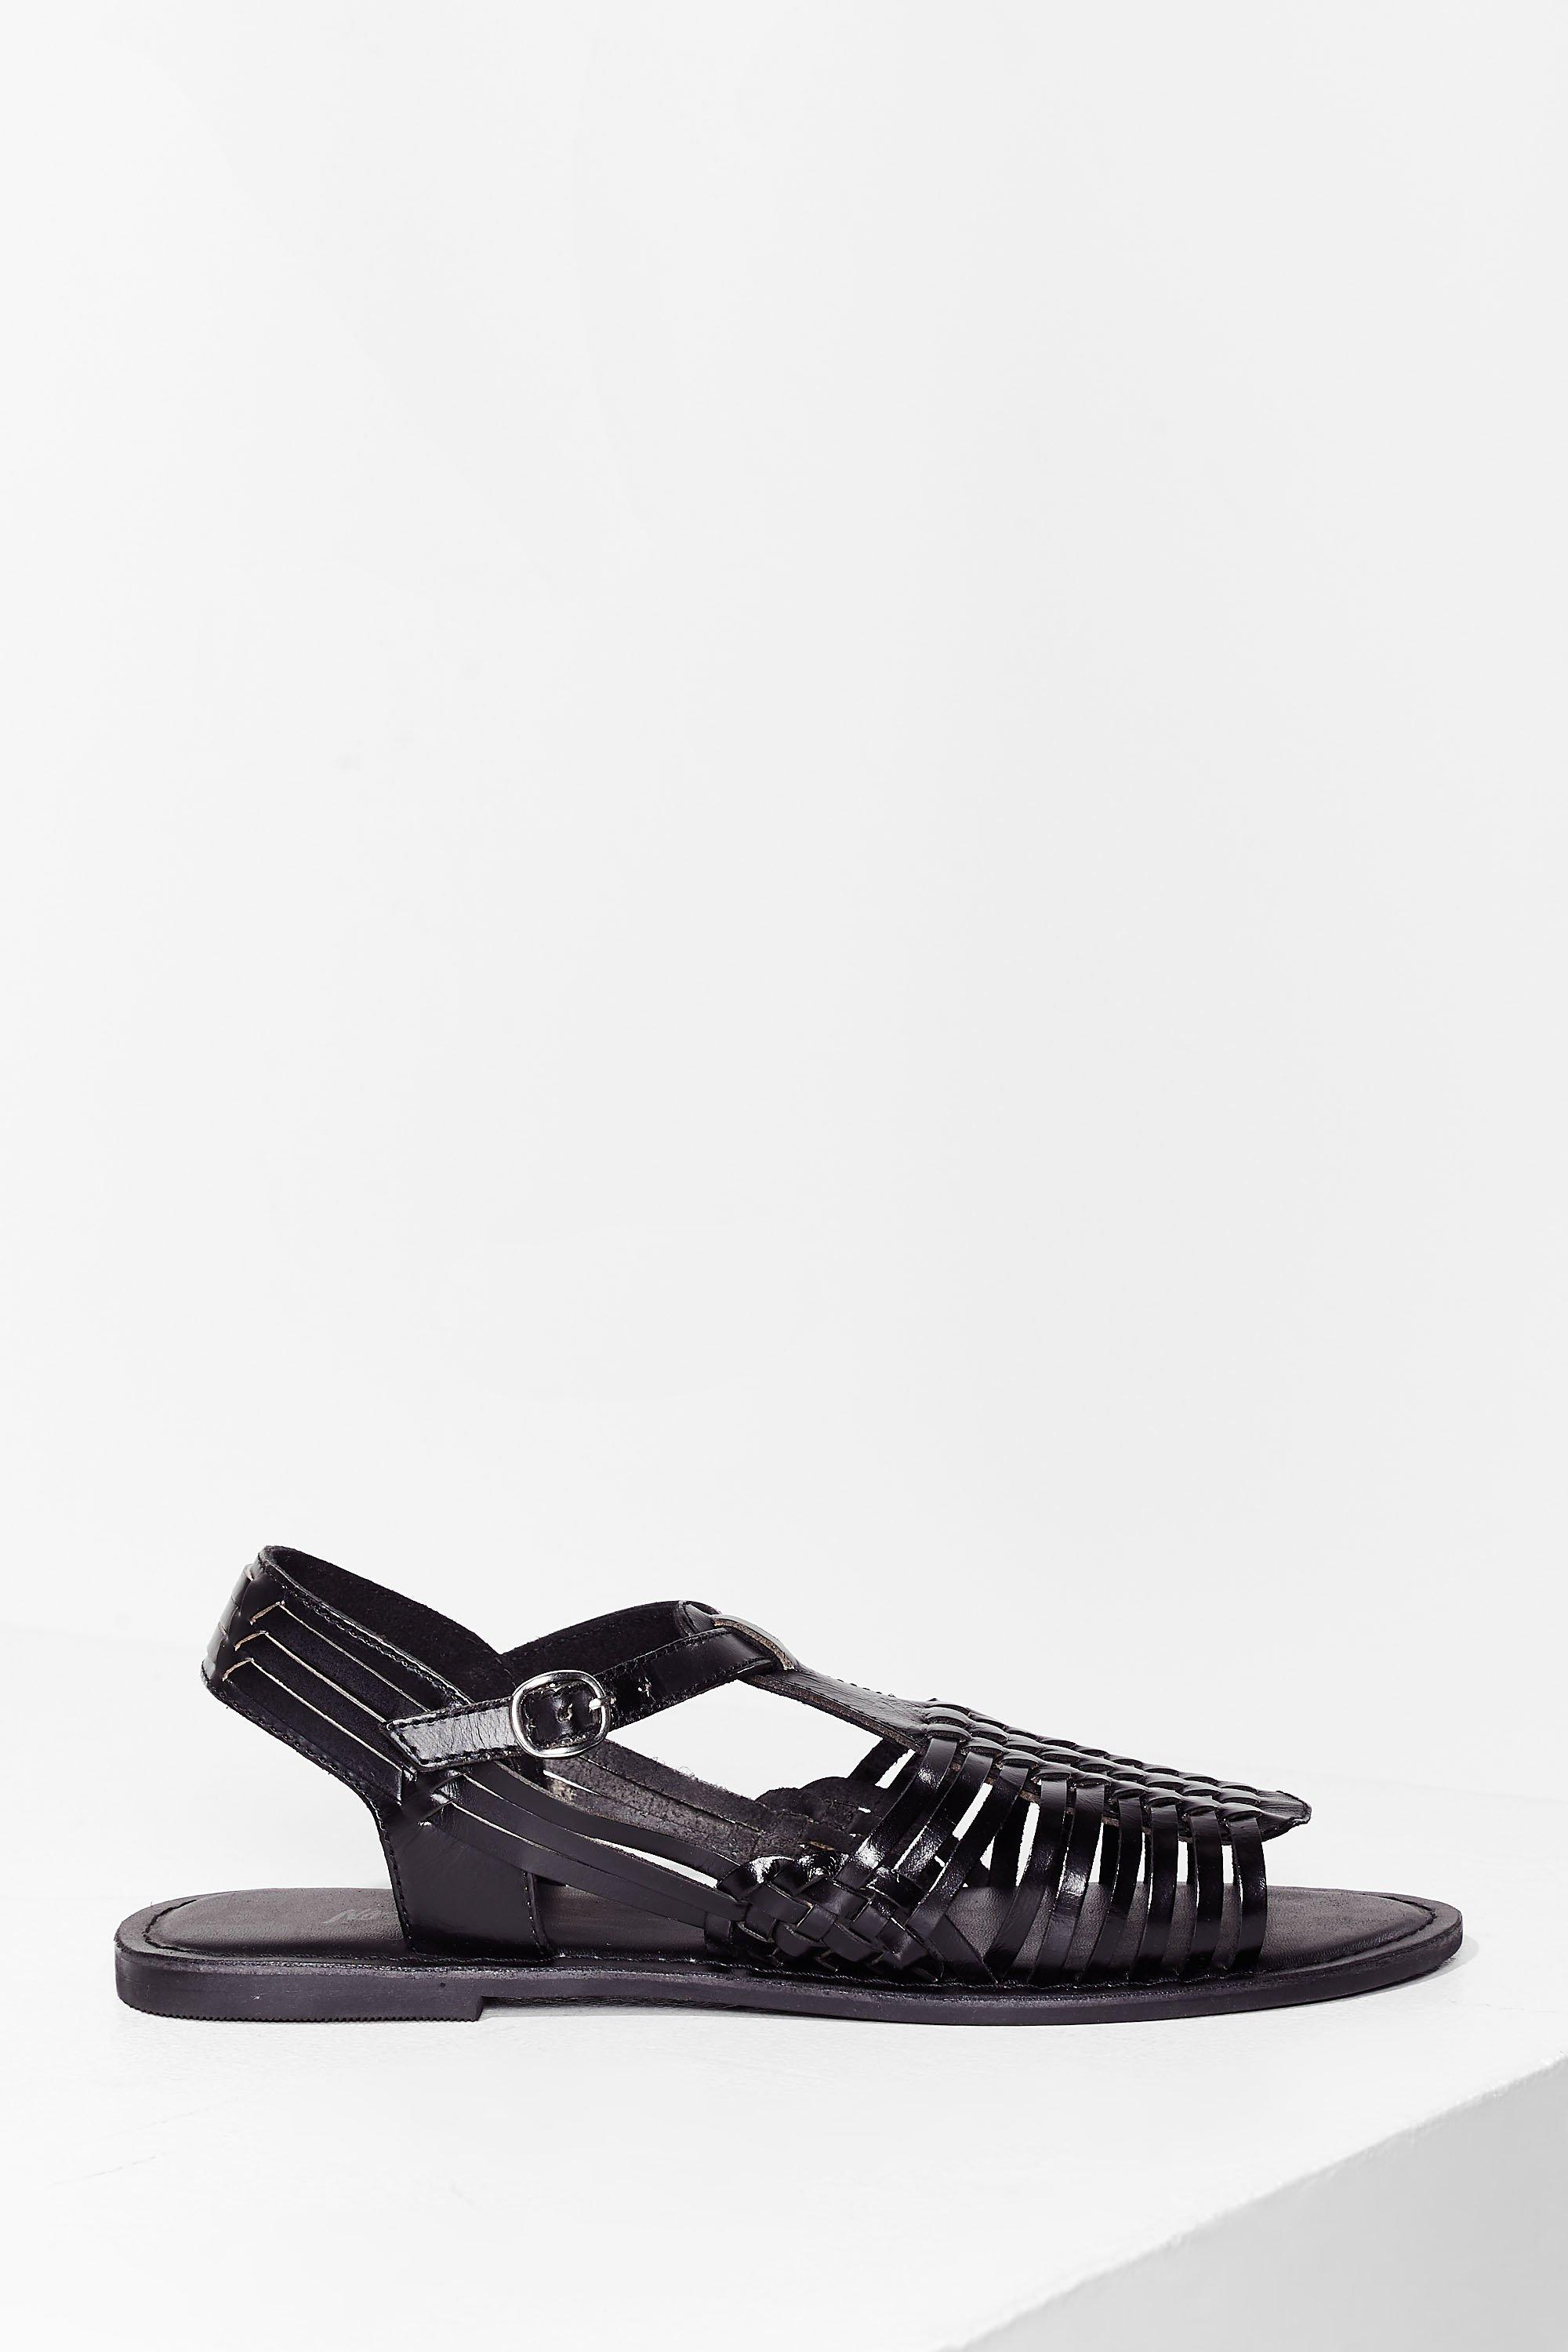 Image of Womens Strappy Together Leather Woven Sandals - Black